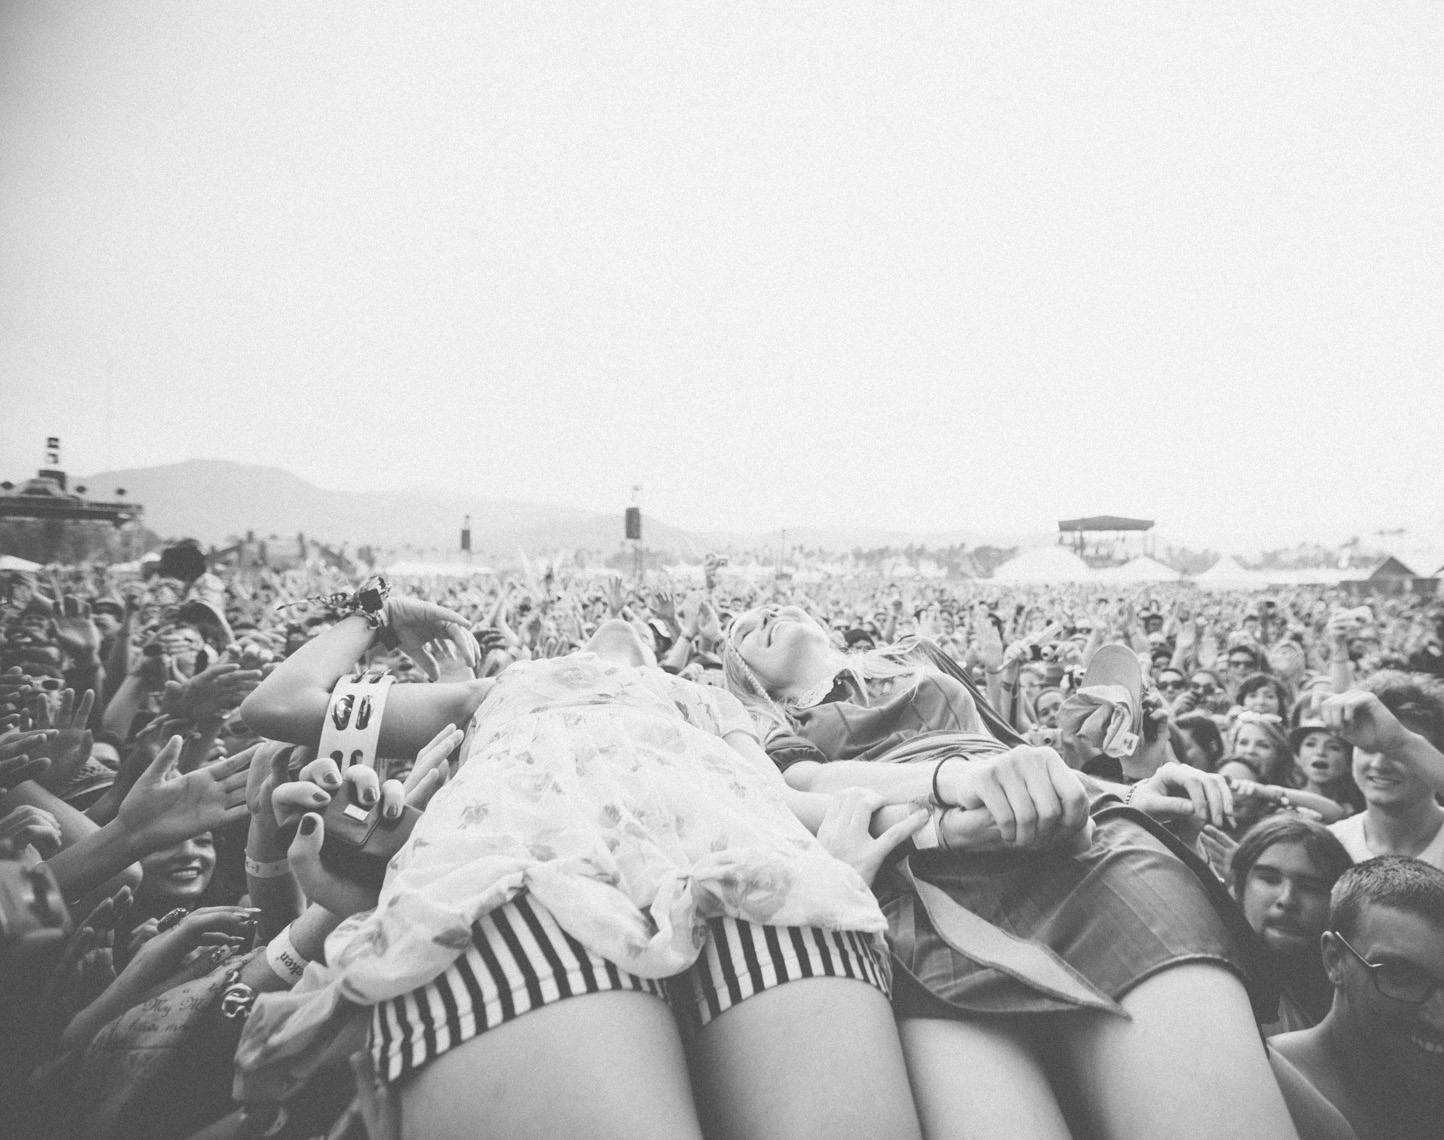 Edward Sharpe and the Magnetic Zeros Jade Crowdsurfing at Coachella music festival